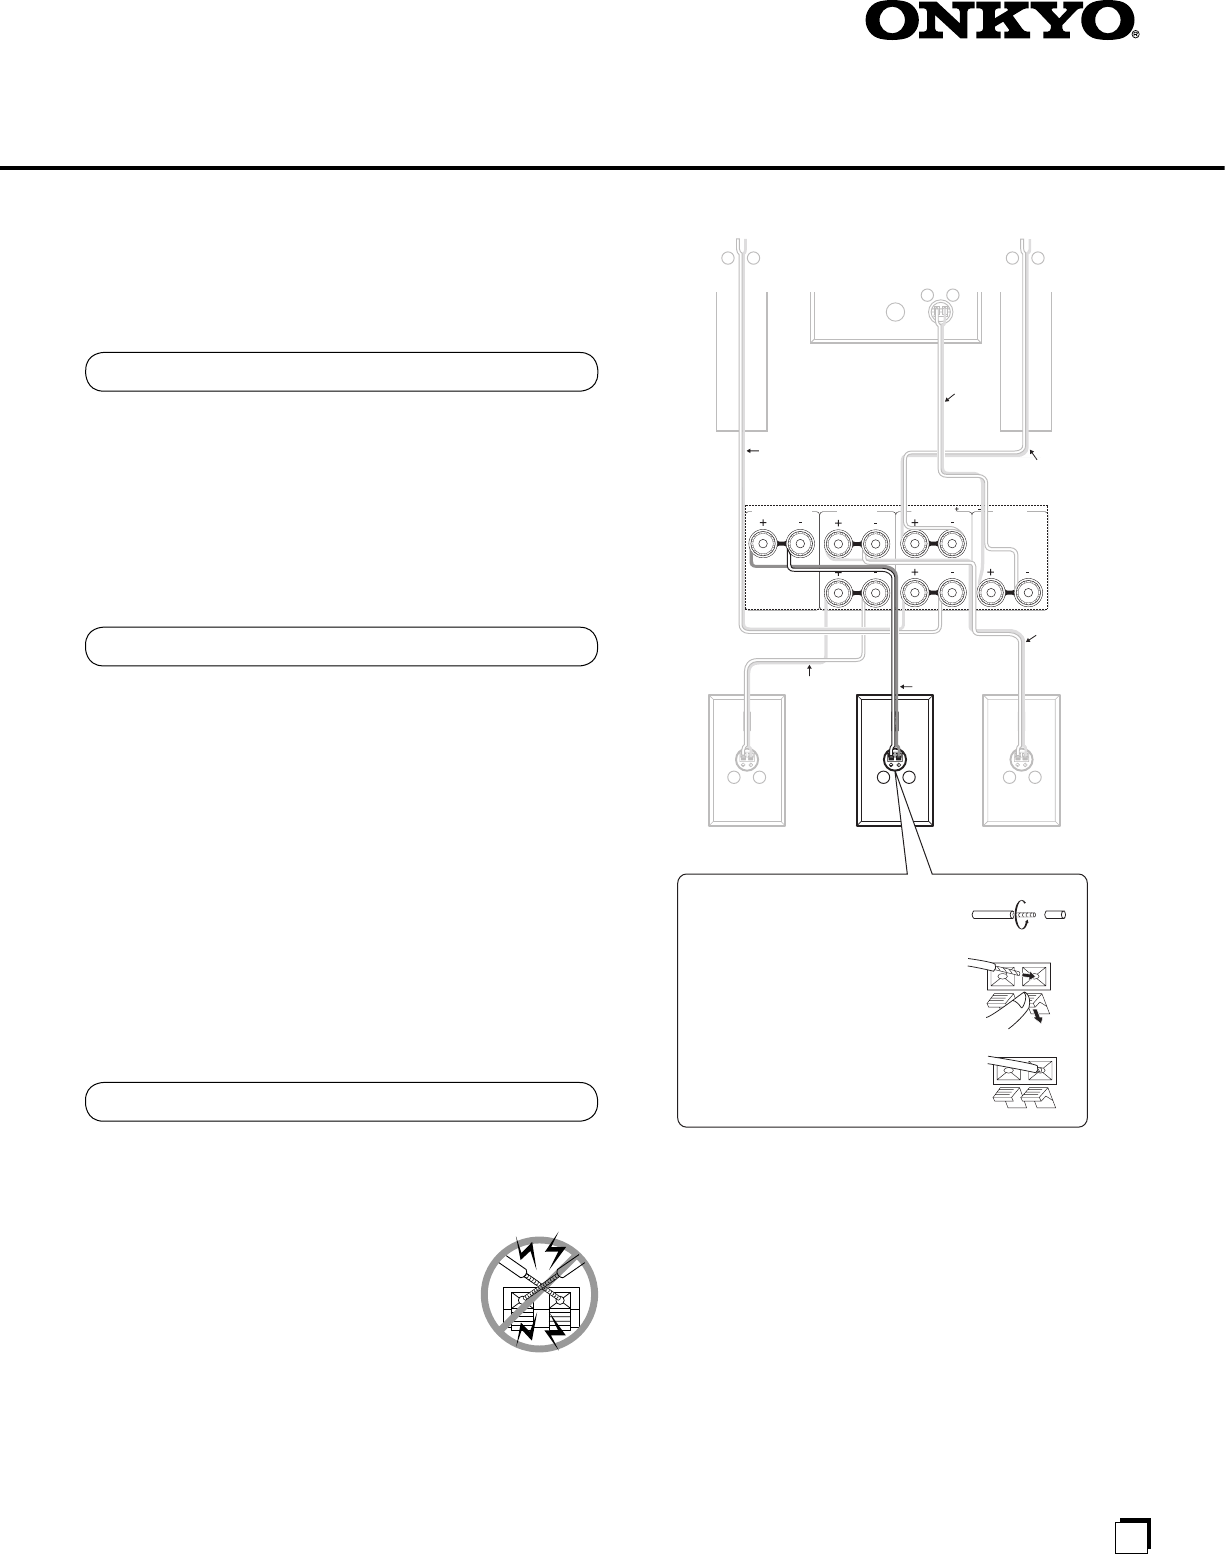 Onkyo Portable Speaker Skf 4700 User Guide Manualsonlinecom Wiring Diagram En